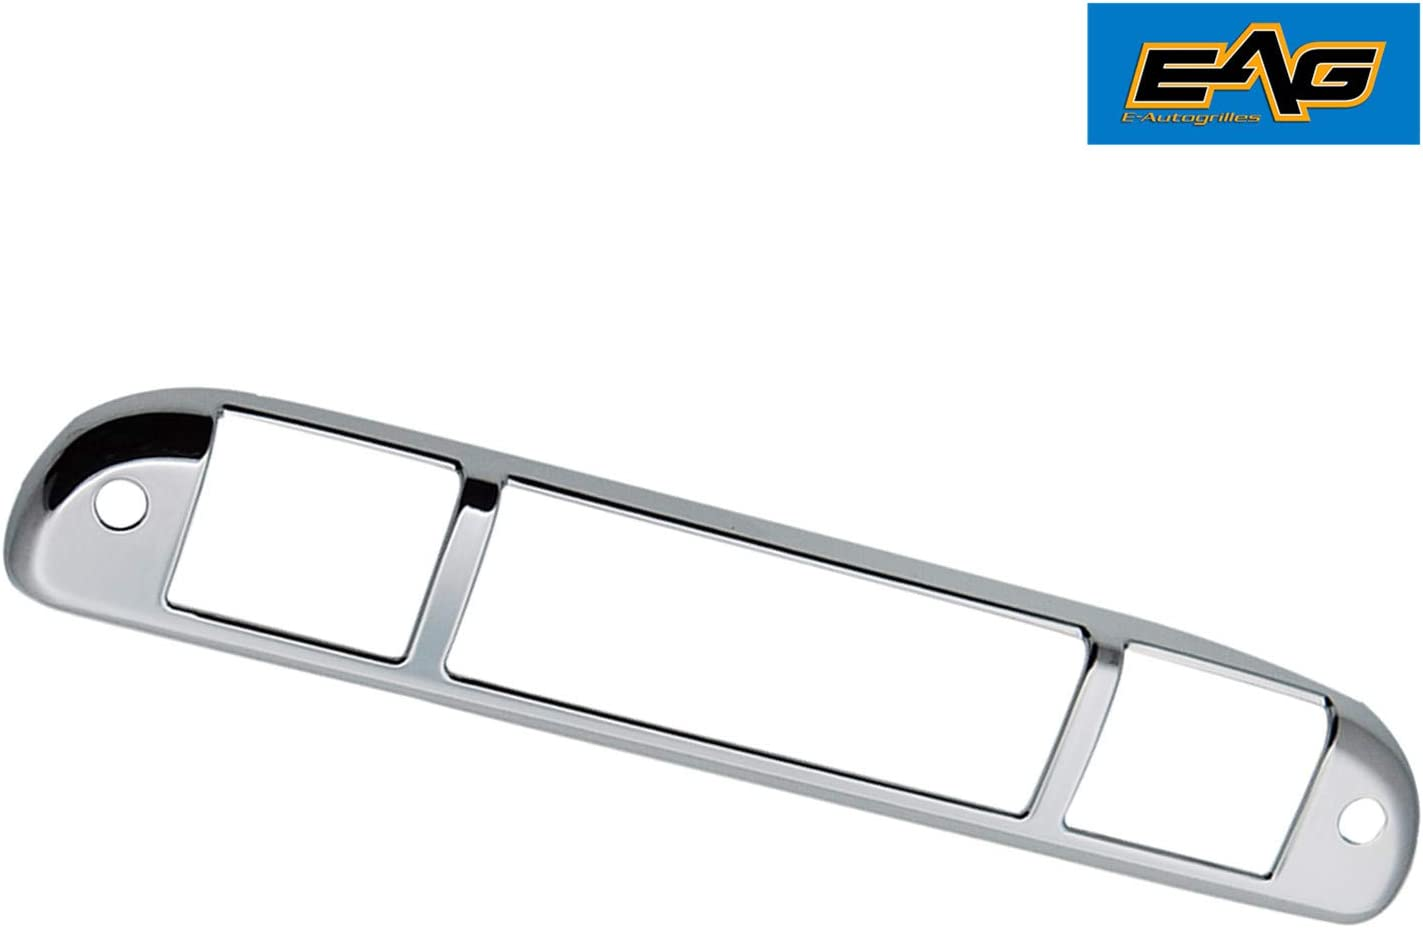 Triple Chrome Plated Third Brake Light Taillight Cover for 99-15 Ford F250 F350